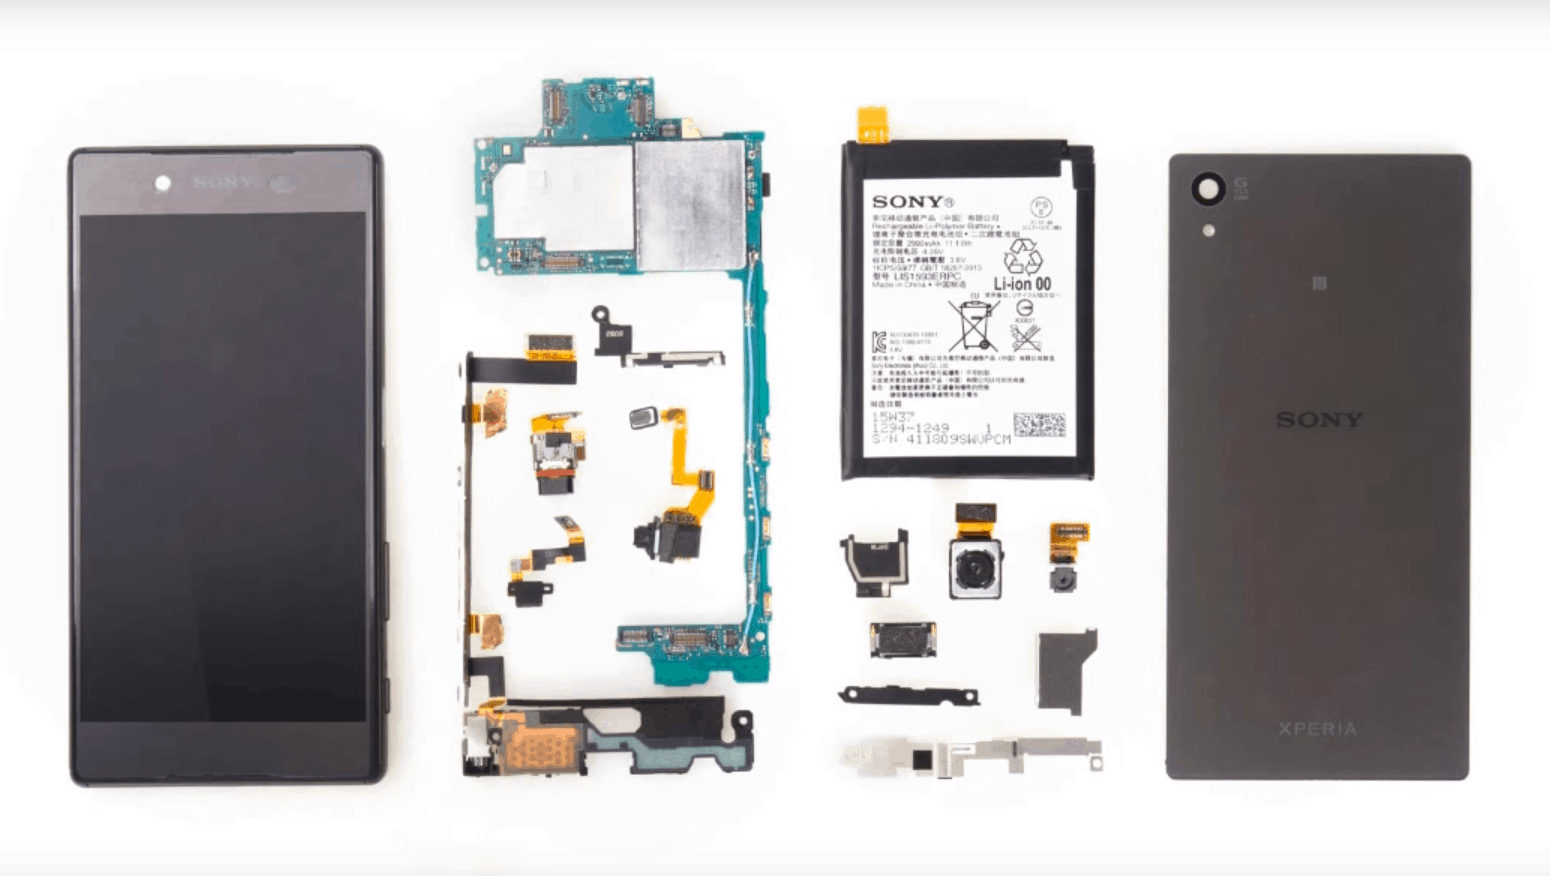 Xperia Z5 teardown_1